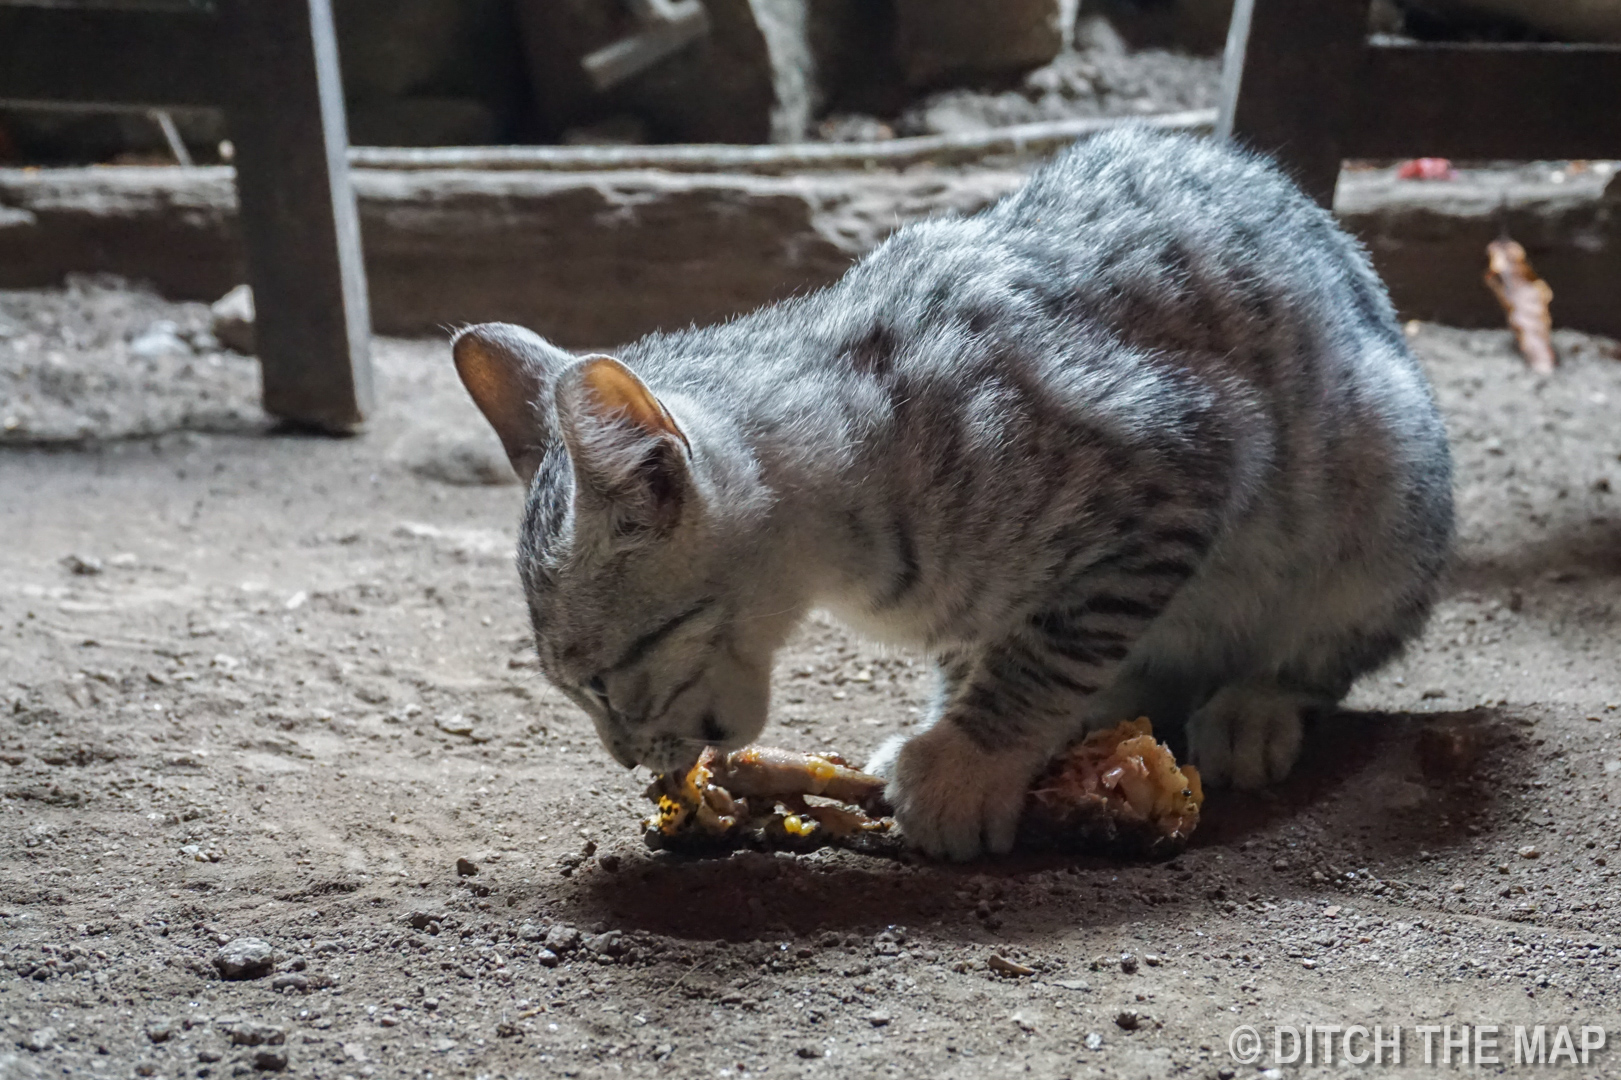 Adorable kitten steals our chicken bone while eating at hydroelectrica